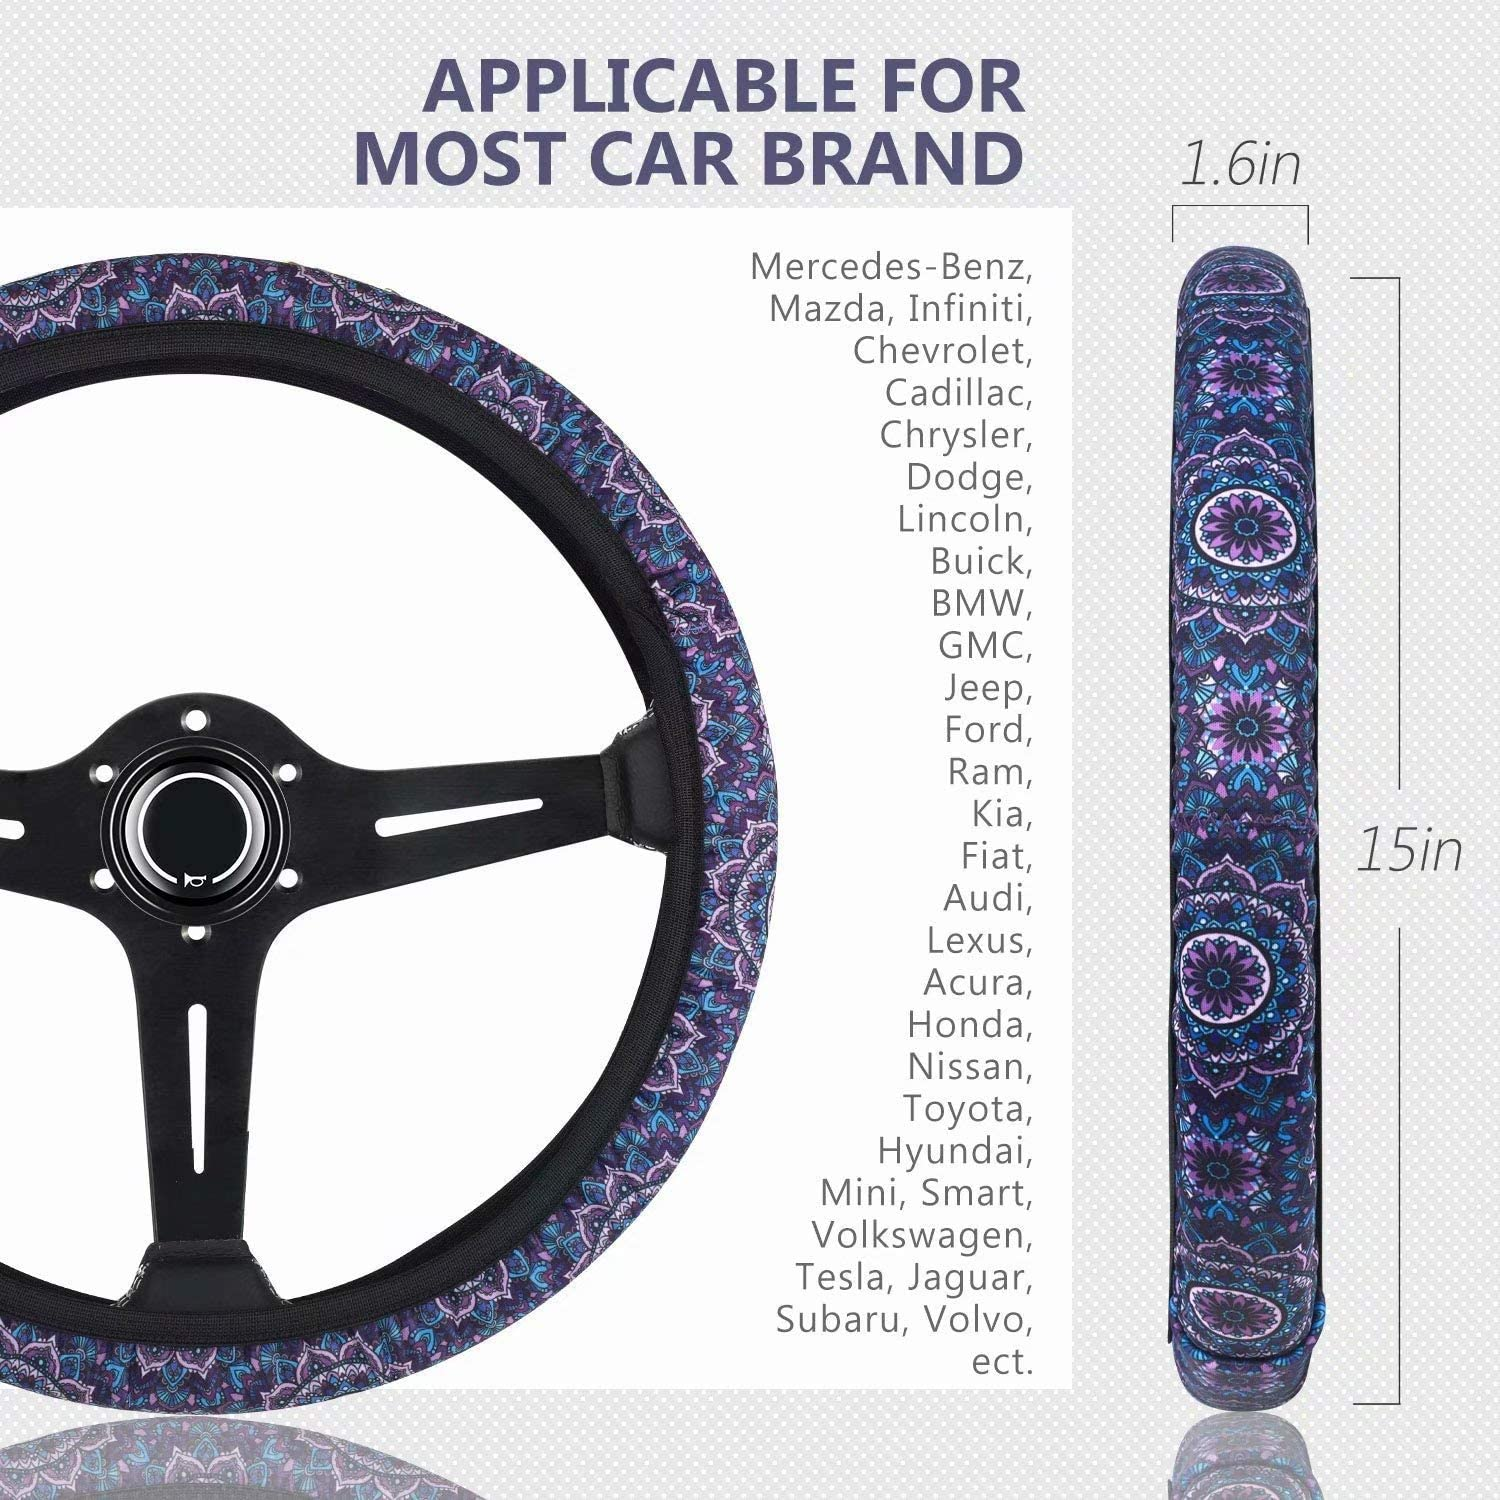 Tupalatus Steering Wheel Cover with Cute Alpaca Print Anti-Slip Neoprene Material Stretch-on Fabric Cover Universal Fit Fashionable Steering Wheel Car Accessories